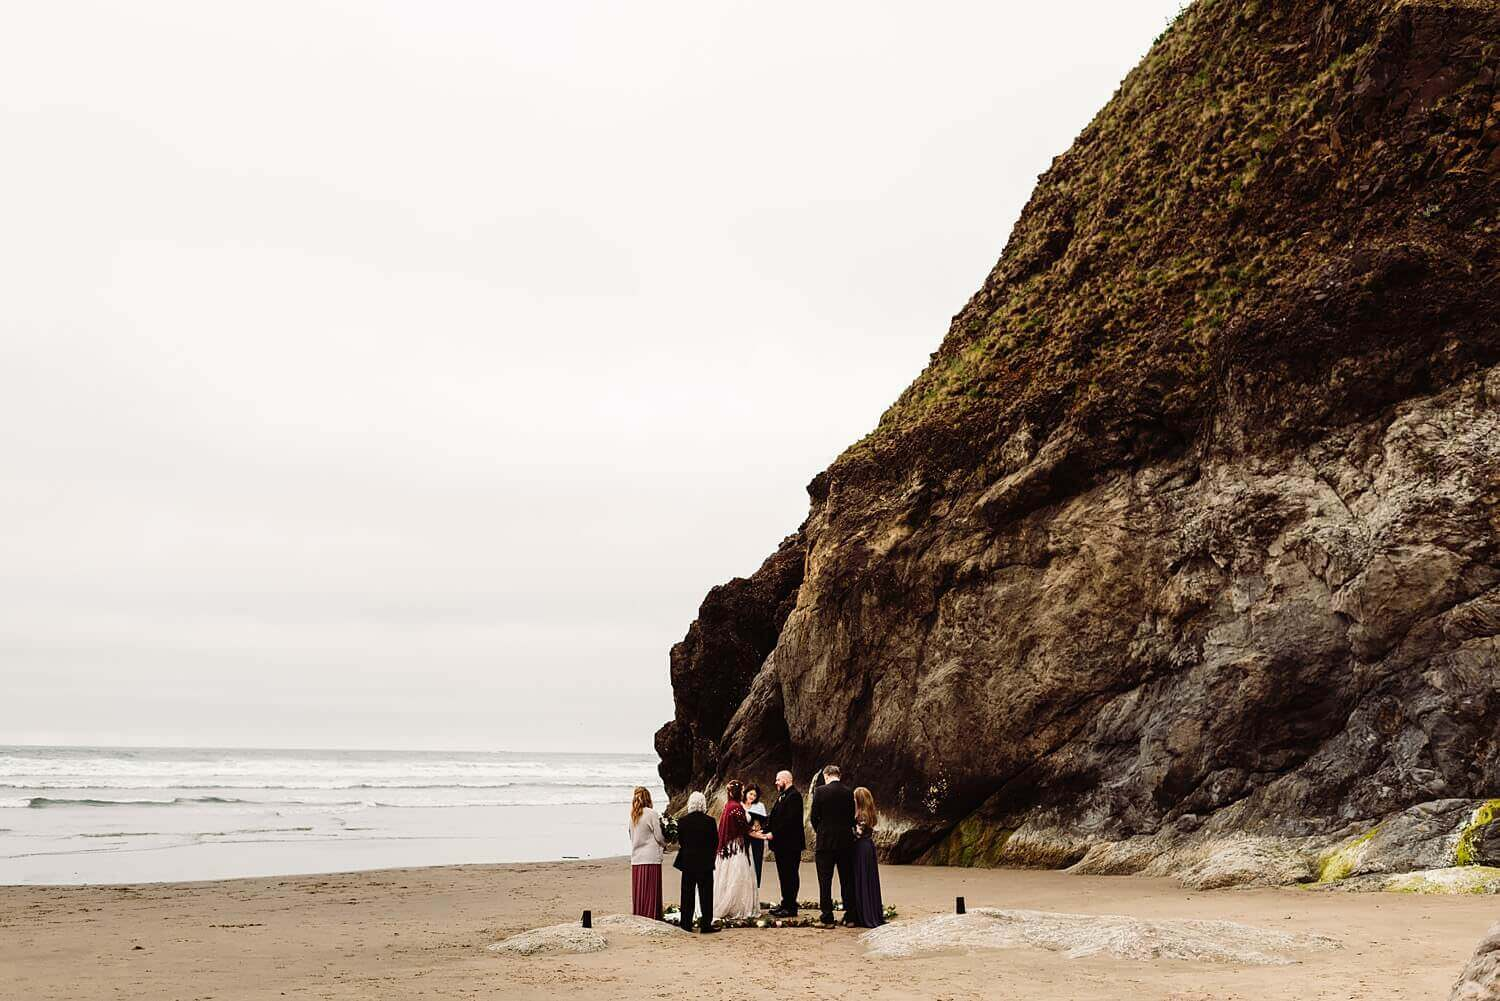 Elope in Oregon,Oregon Coast Elopement,adventure elopement photographer,arcadia beach,boho wedding,cannon beach,oregon wedding photographer,pacific northwest,tiny wedding,